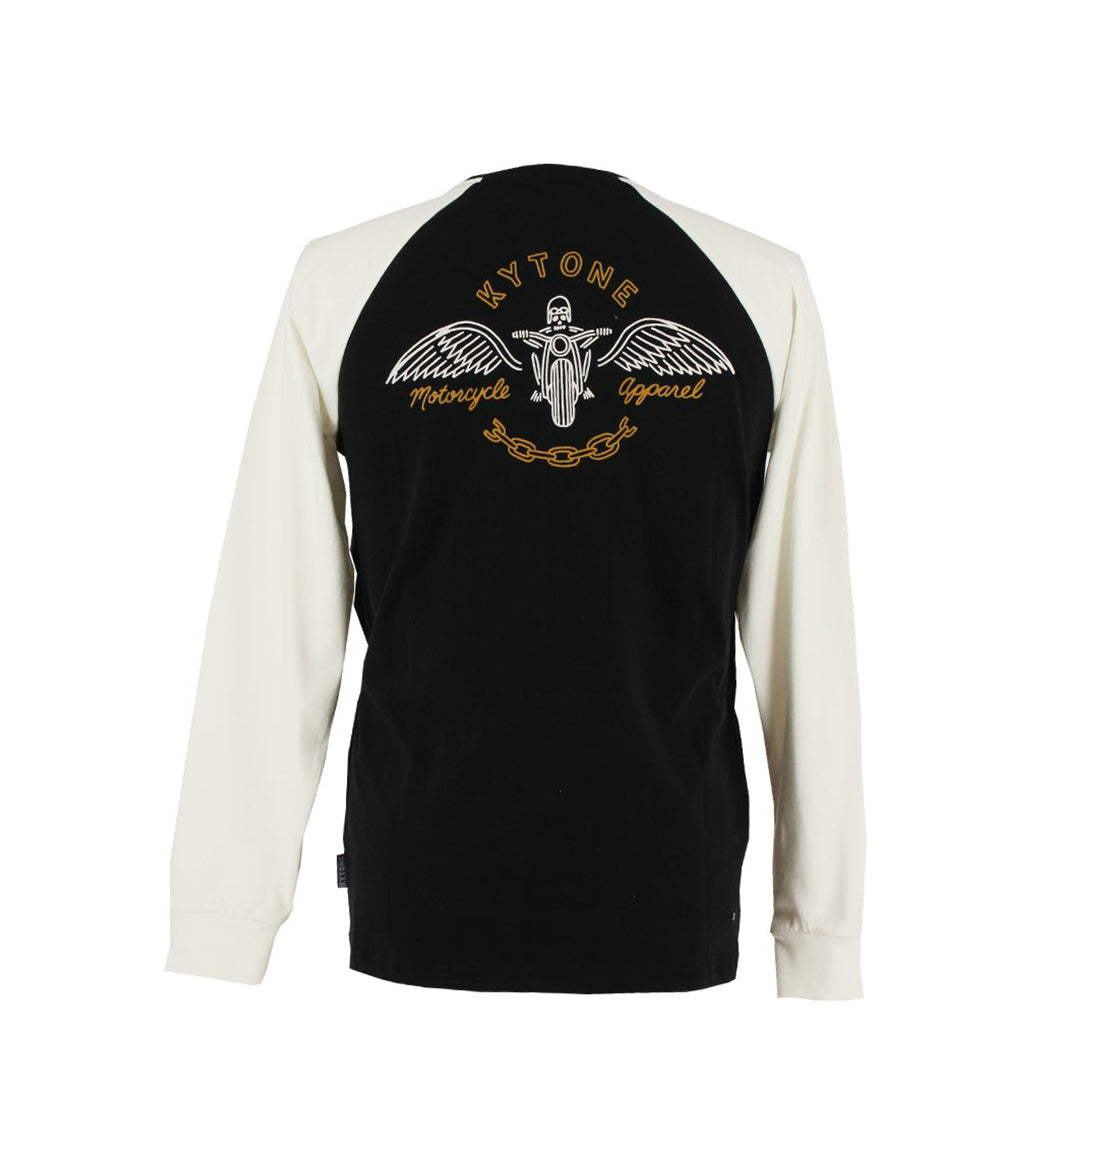 Kytone wings raglan